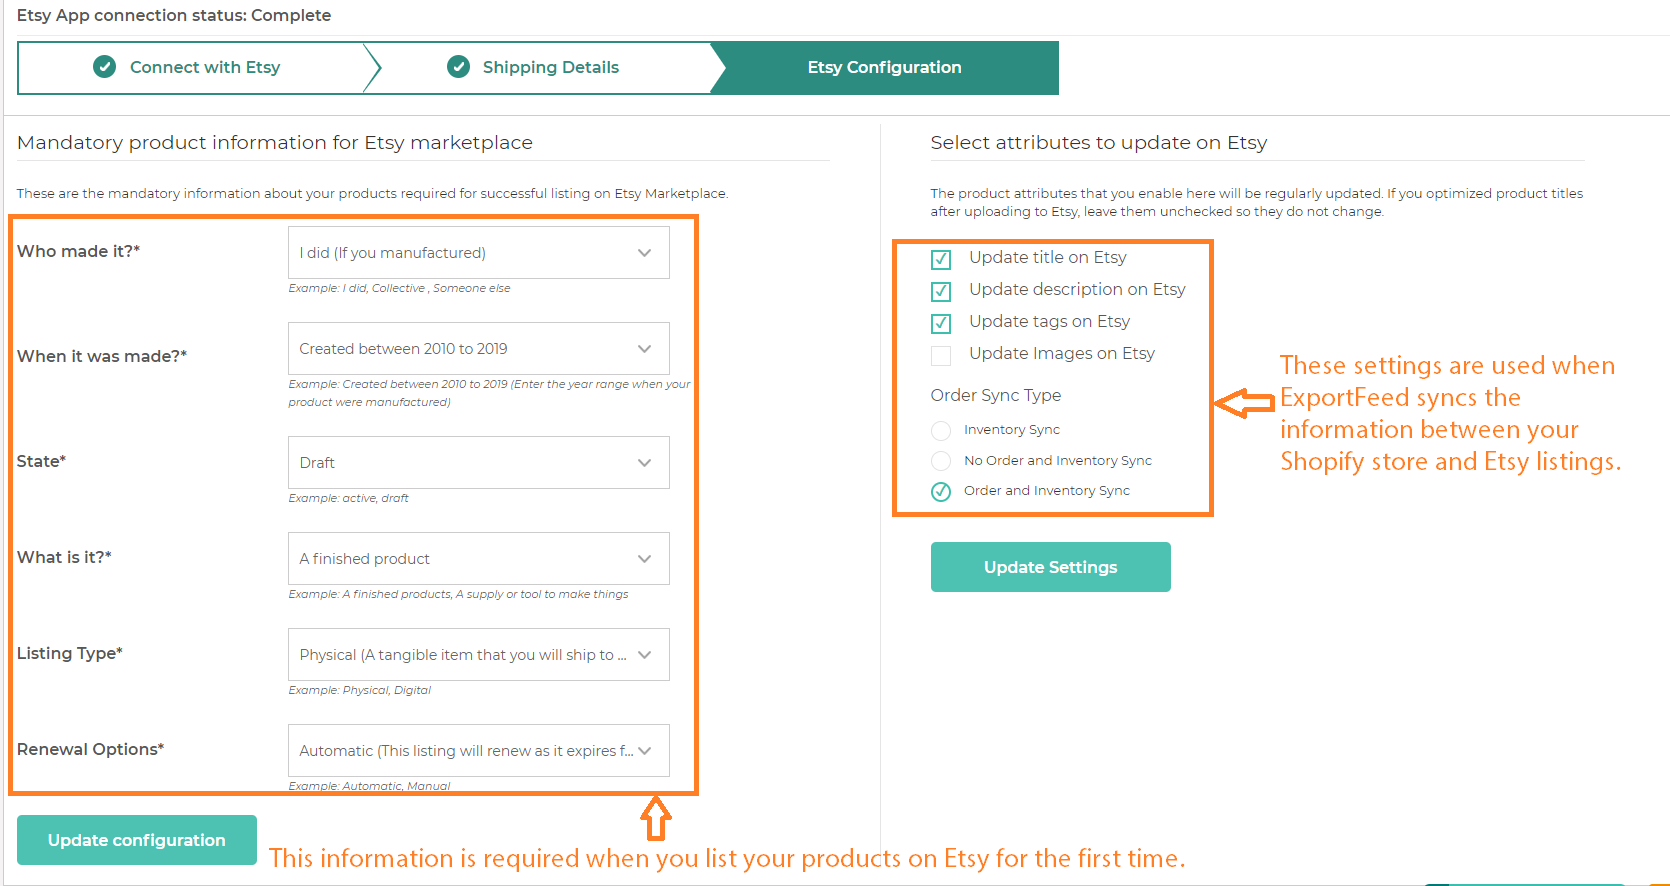 etsy-configuration-settings